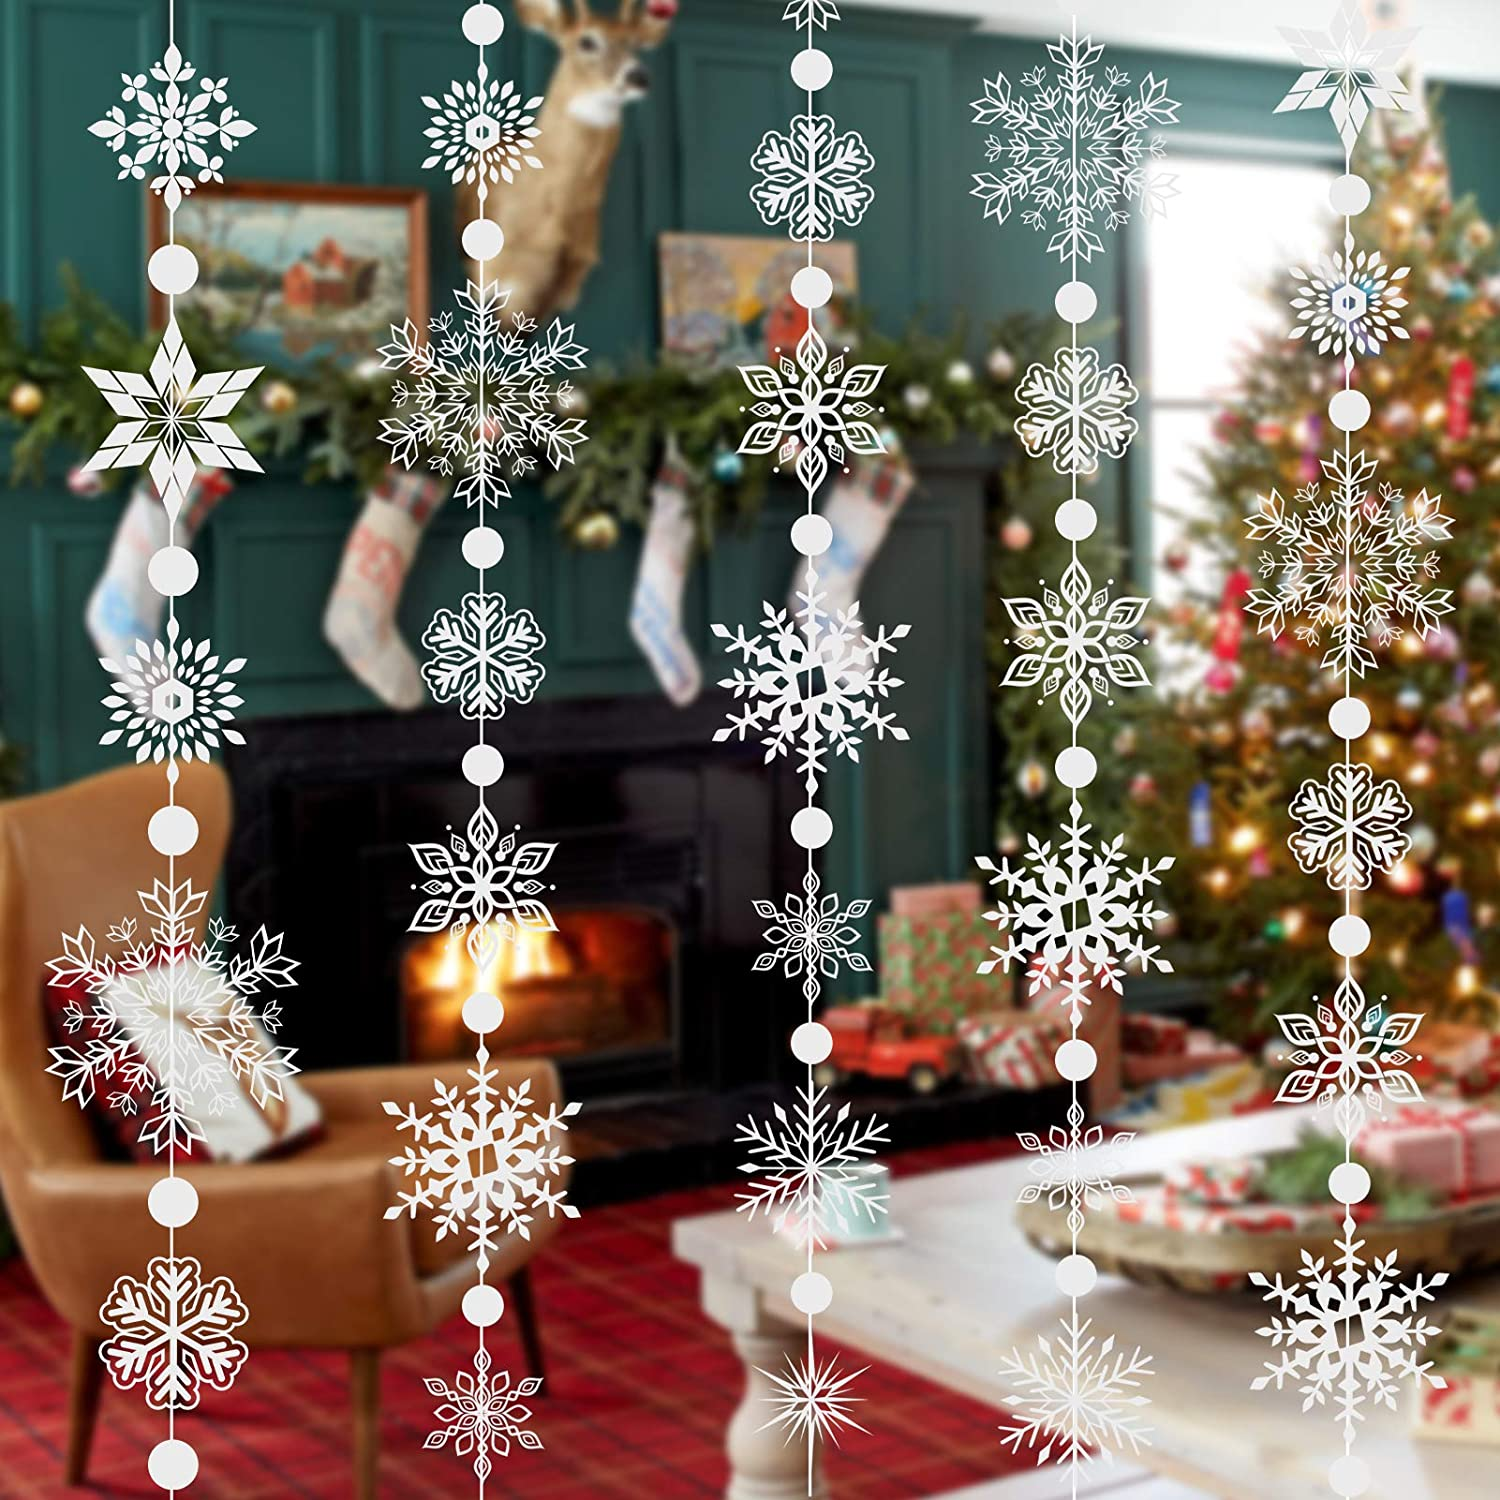 Konsait 16.4ft Winter Snowflake Hanging Garland Christmas Decoration, 20pcs 3D Snowflakes String Ornaments Garland for Christmas Winter Wonderland Holiday New Year Party Home Decorations Supplies